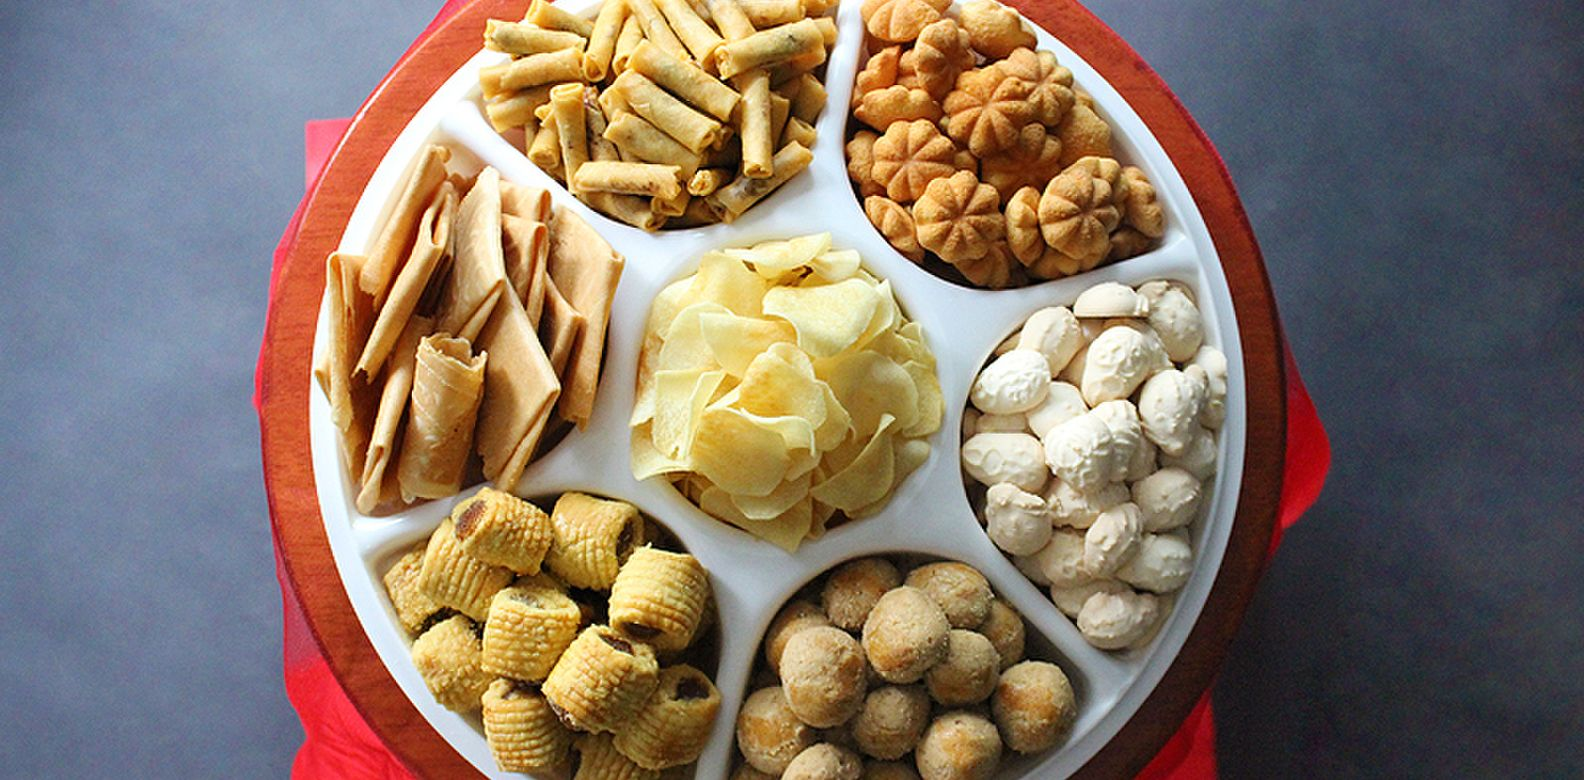 8 chinese new year snacks and why we eat them malaysia tatler 8 chinese new year snacks and why we eat them buycottarizona Images